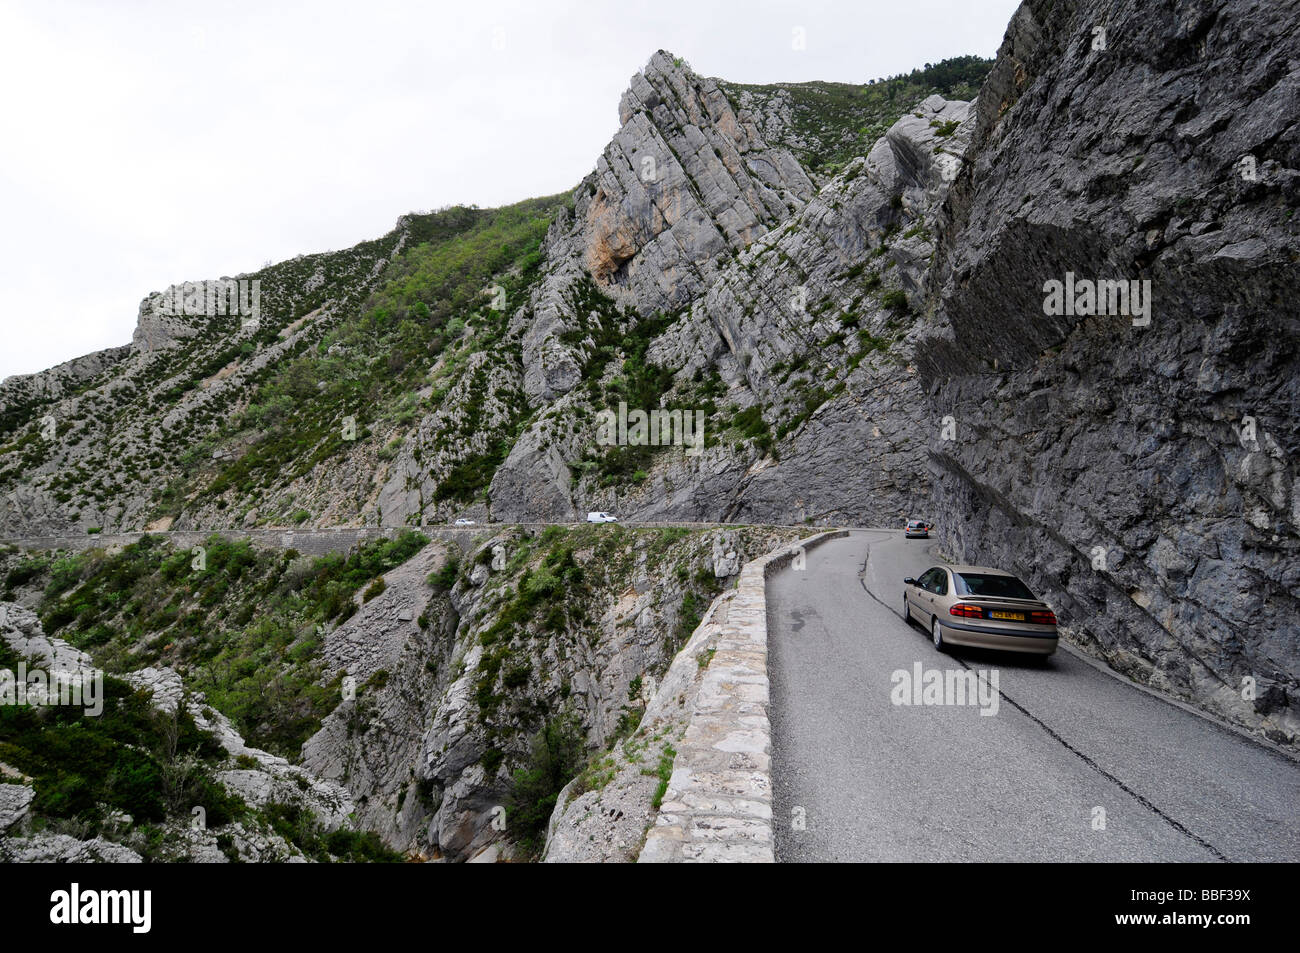 driving a car on the famous route napoleon a winding scenic road stock photo 24303494 alamy. Black Bedroom Furniture Sets. Home Design Ideas